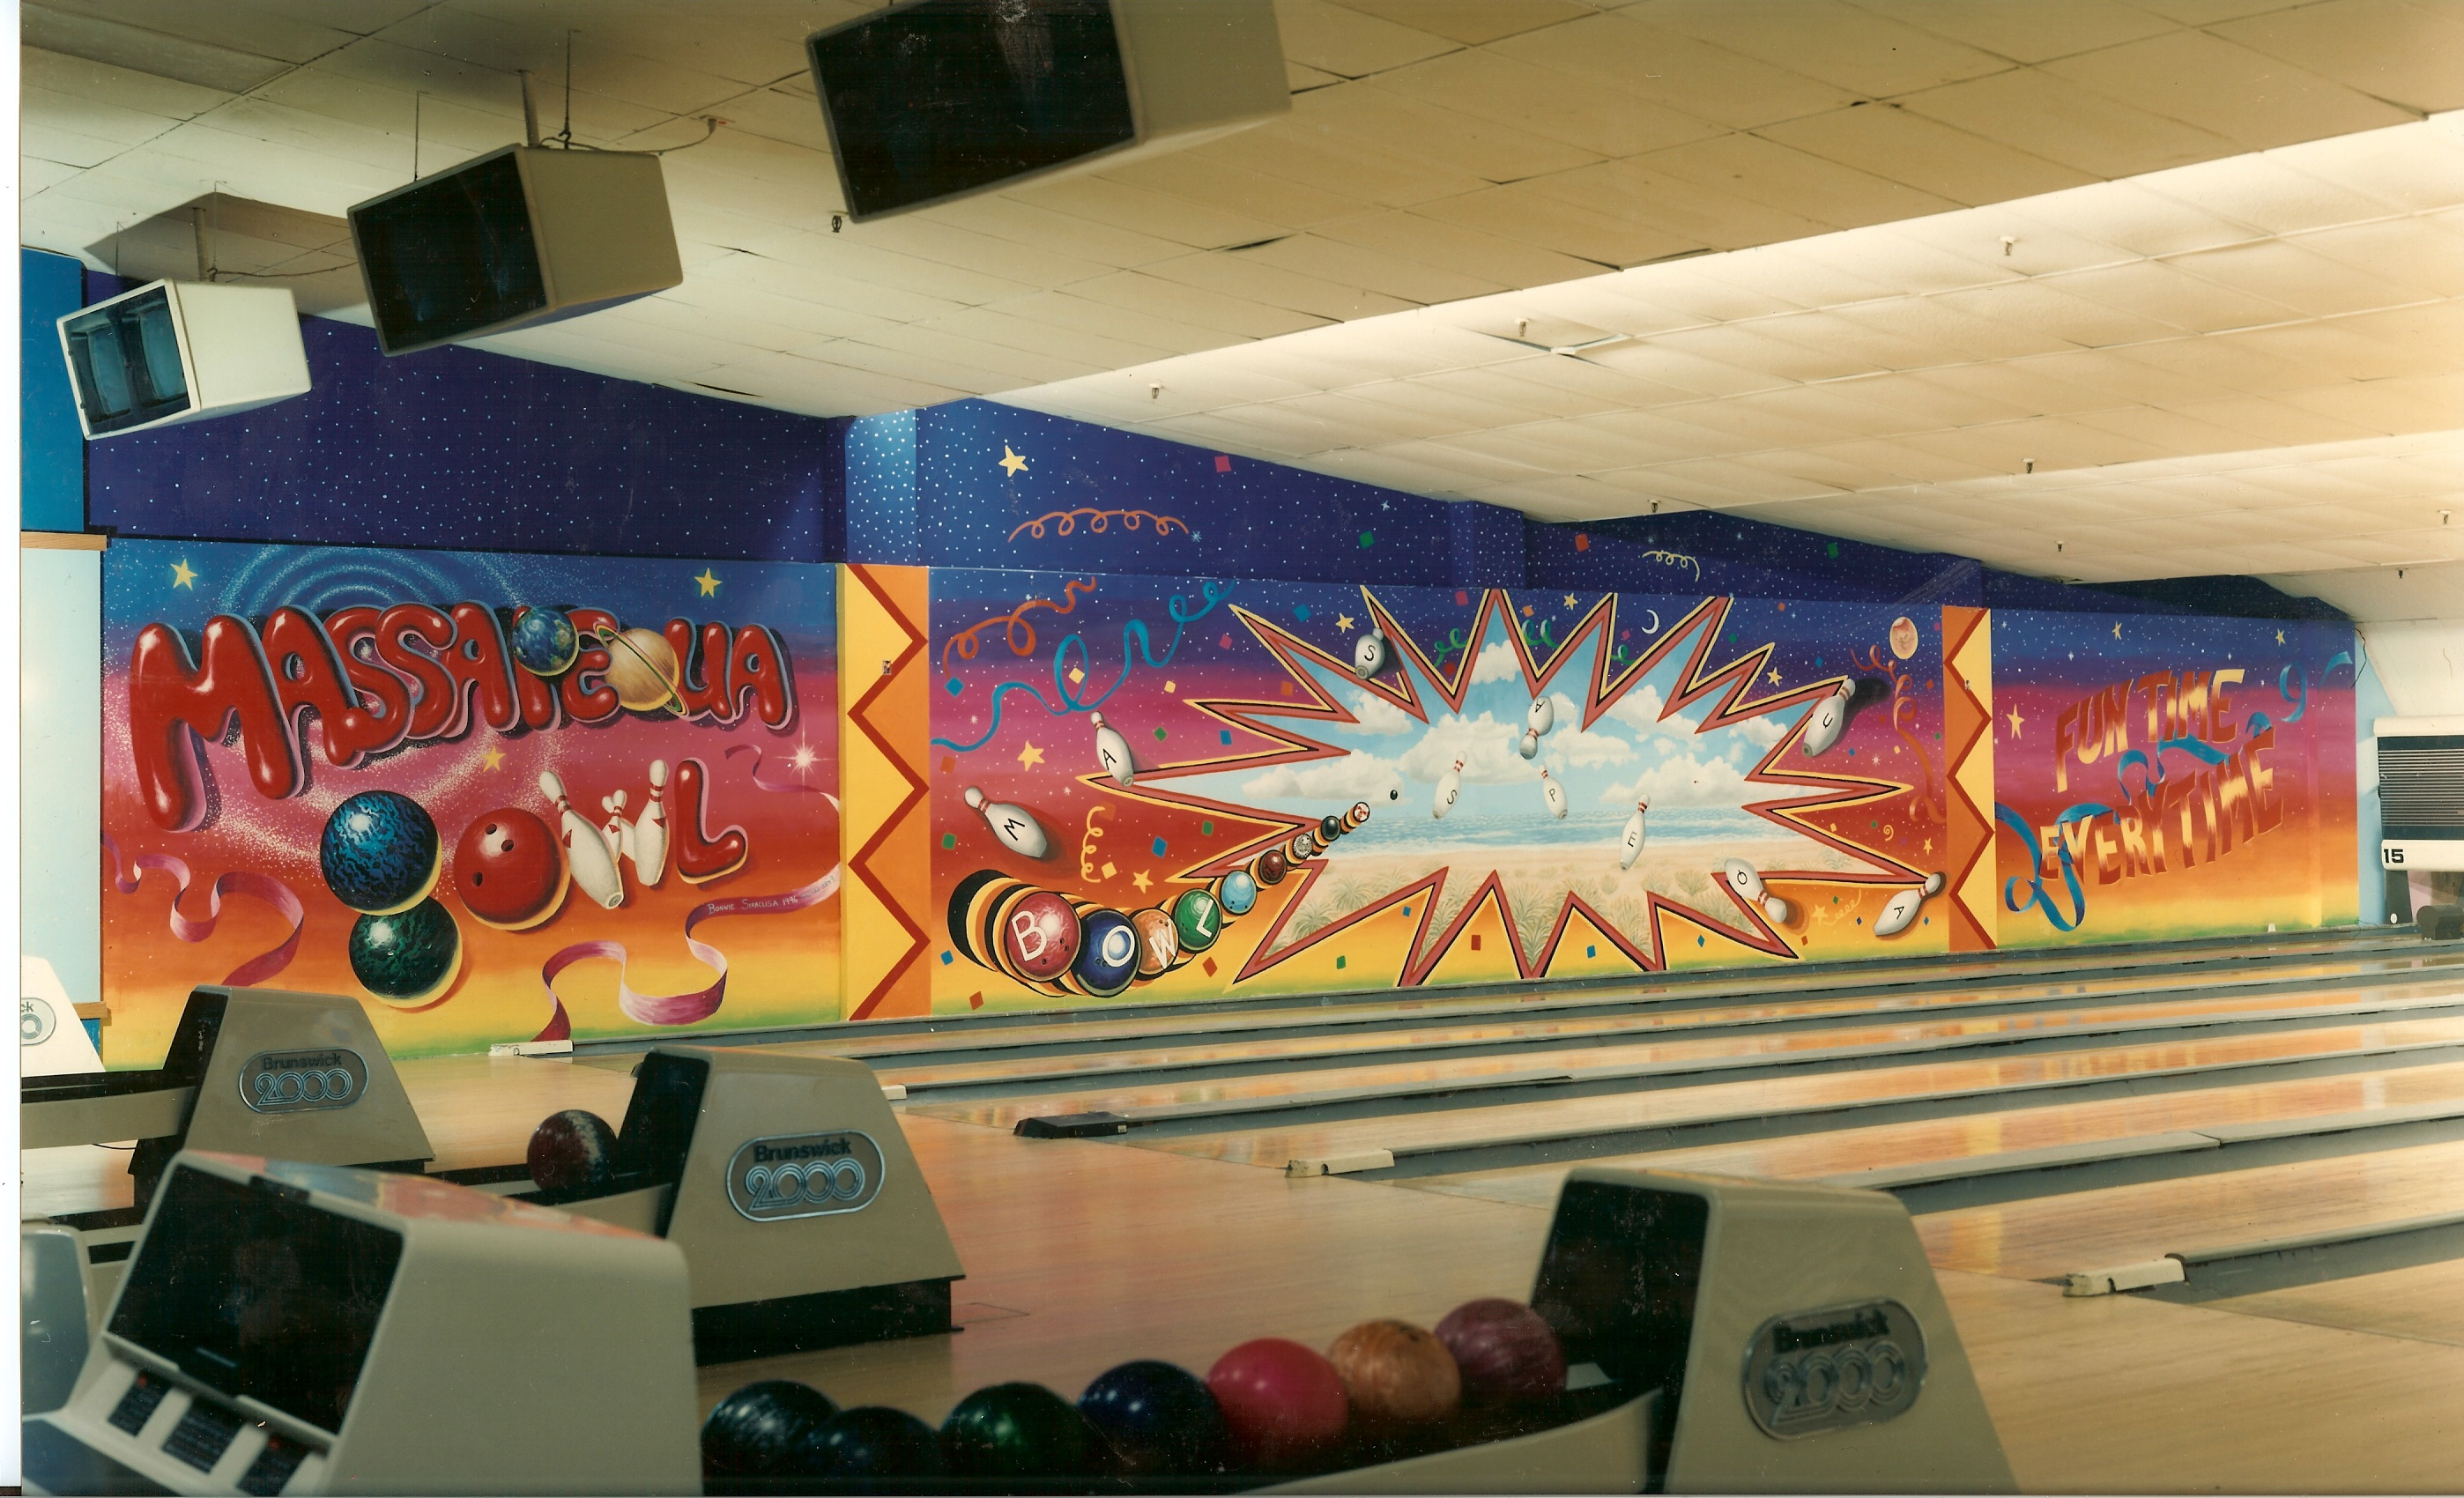 2796x1700 massapequa bowling alley murals in massapequa, new york - Bowling Lane Drawing